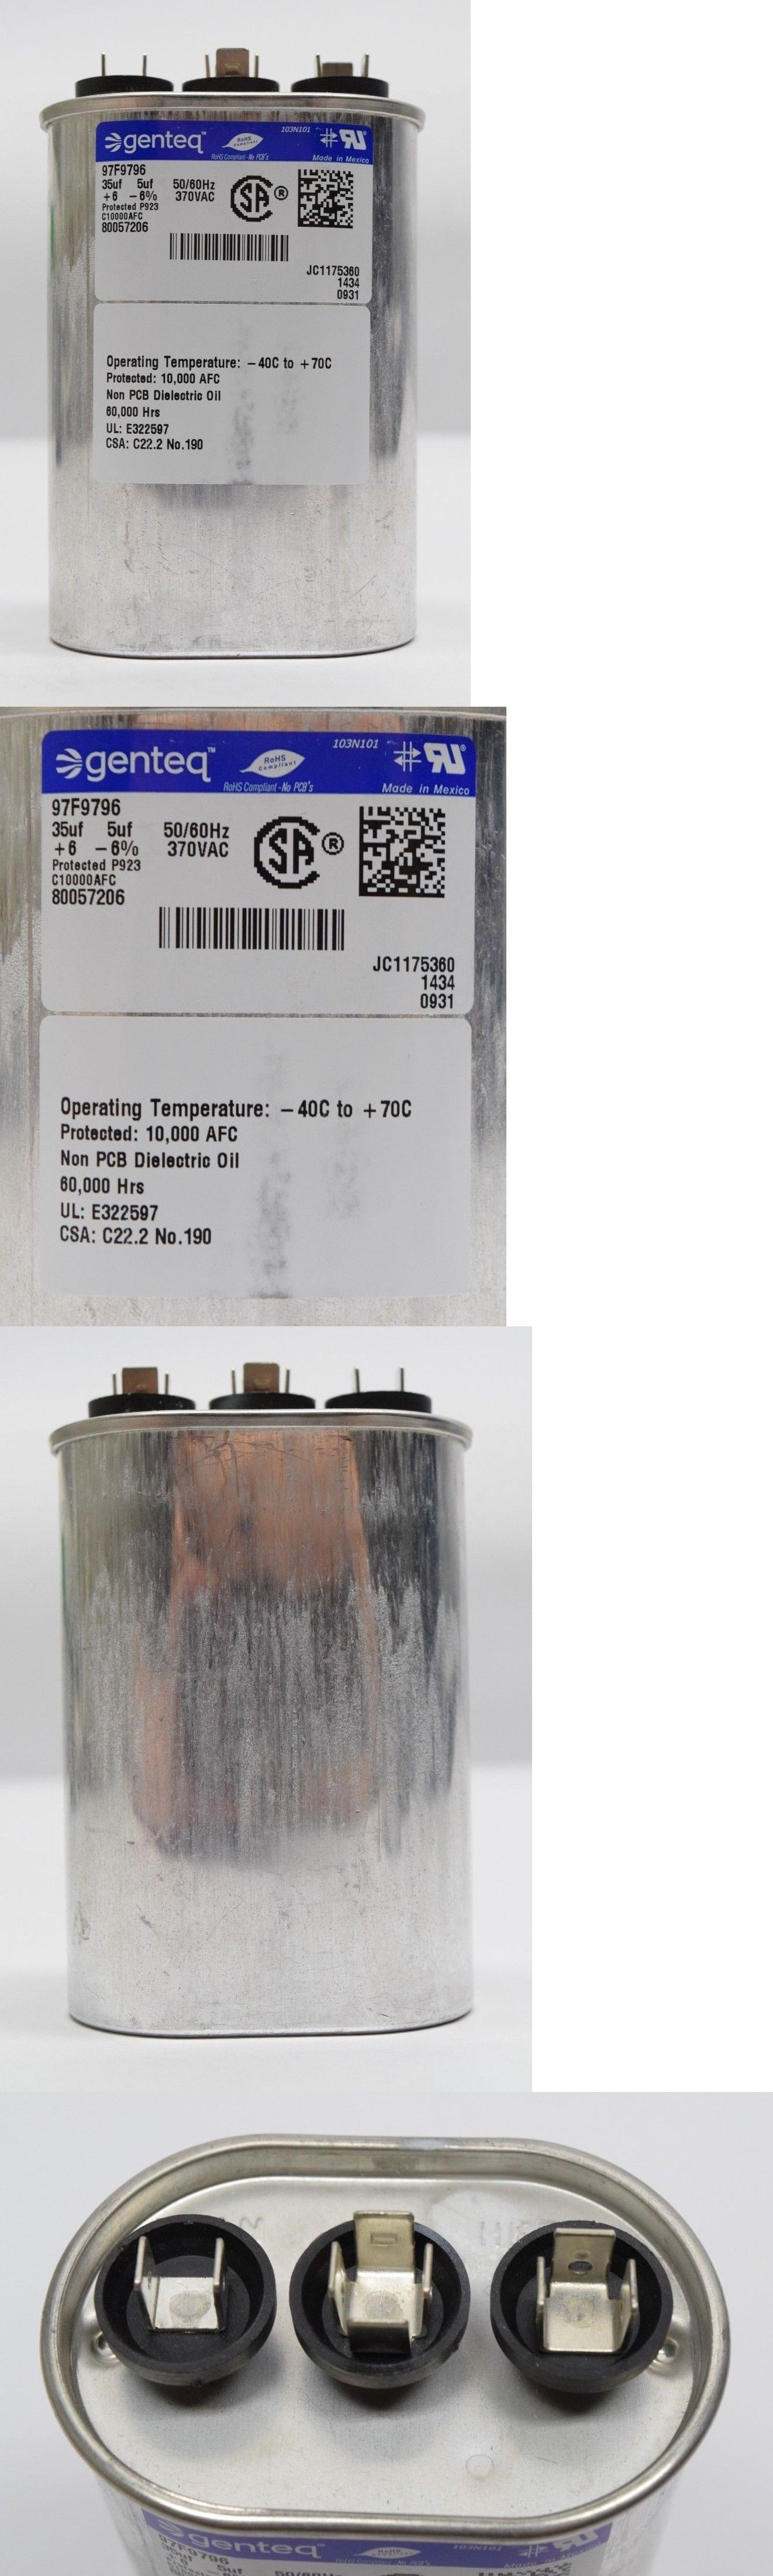 Central Air Conditioners 185108 Packard Pocd355 35 + 5 Uf